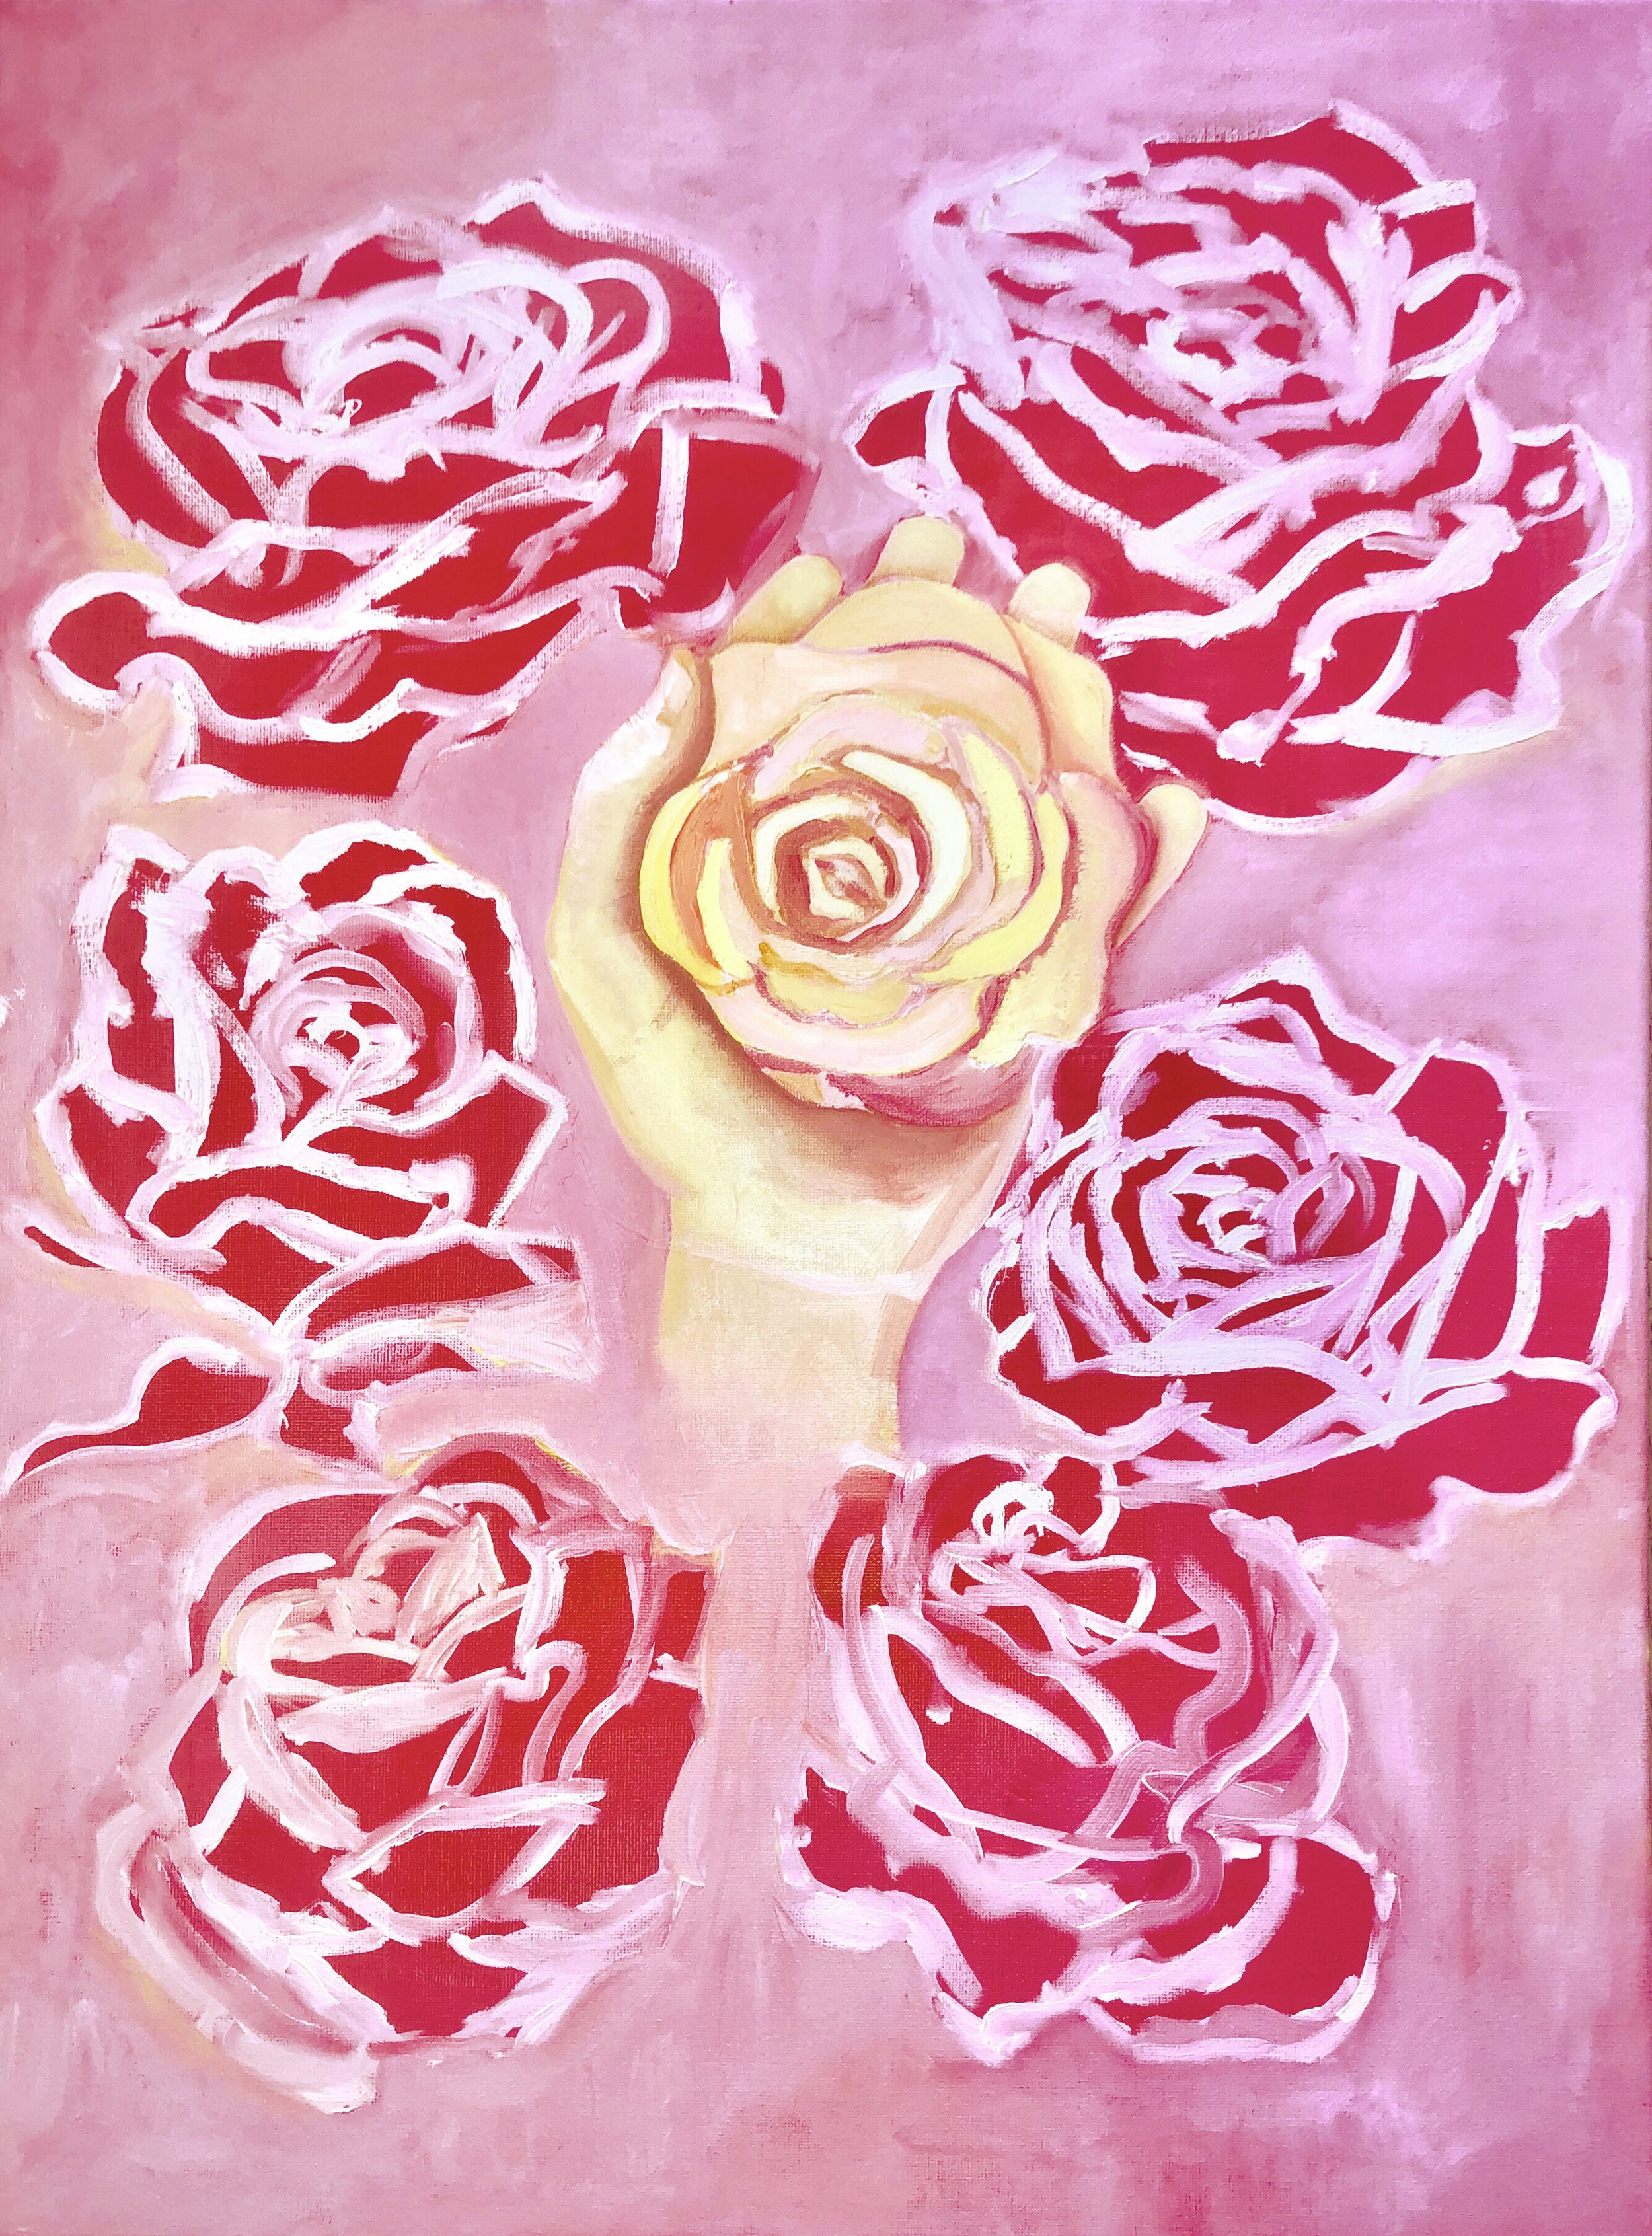 katrina-eugenia-live-art-live-painting-nyc-artist-oil-painting-philosophy-love-philosophy-skincare-pure-grace-pure-grace-nude-rose-amazing-grace-amazing-grace-ballet-rose.jpg